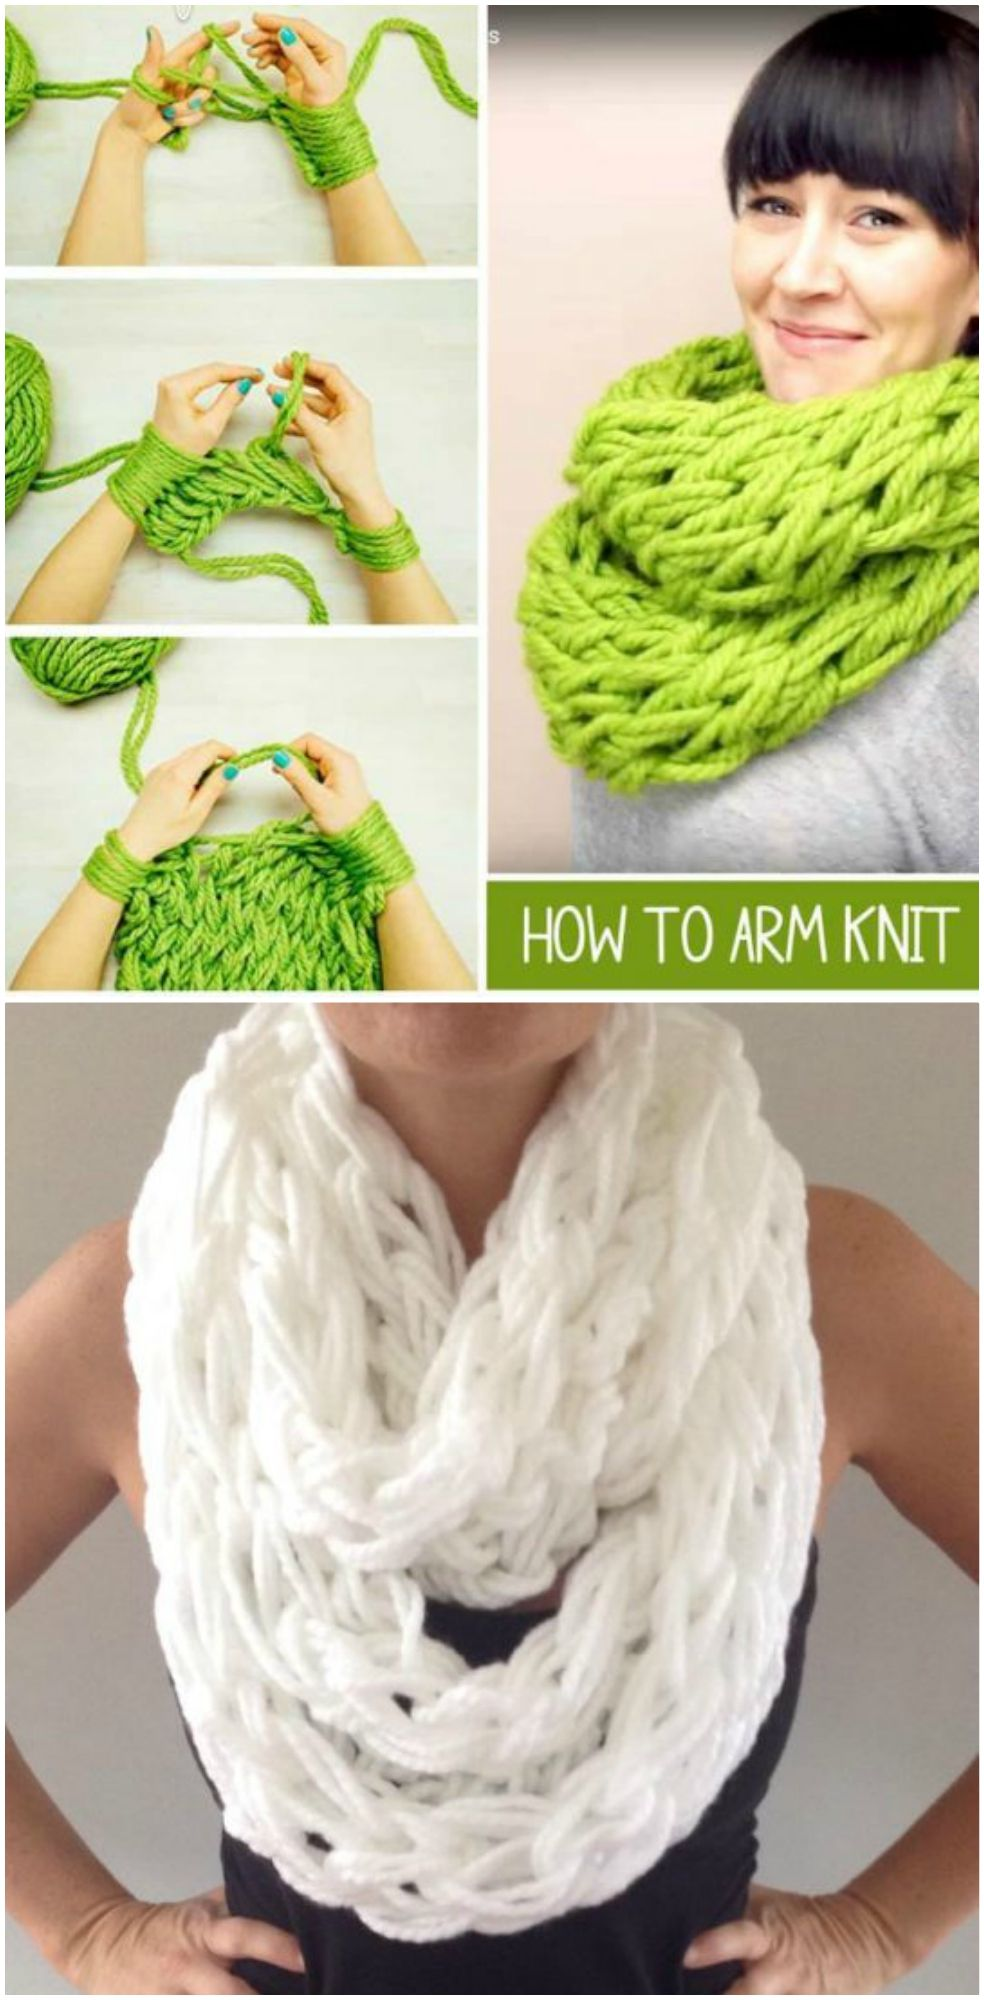 This Arm Knit Scarf Step By Step Tutorial comes with video instructions and is ready in 30 short minutes. You are going to love this project.